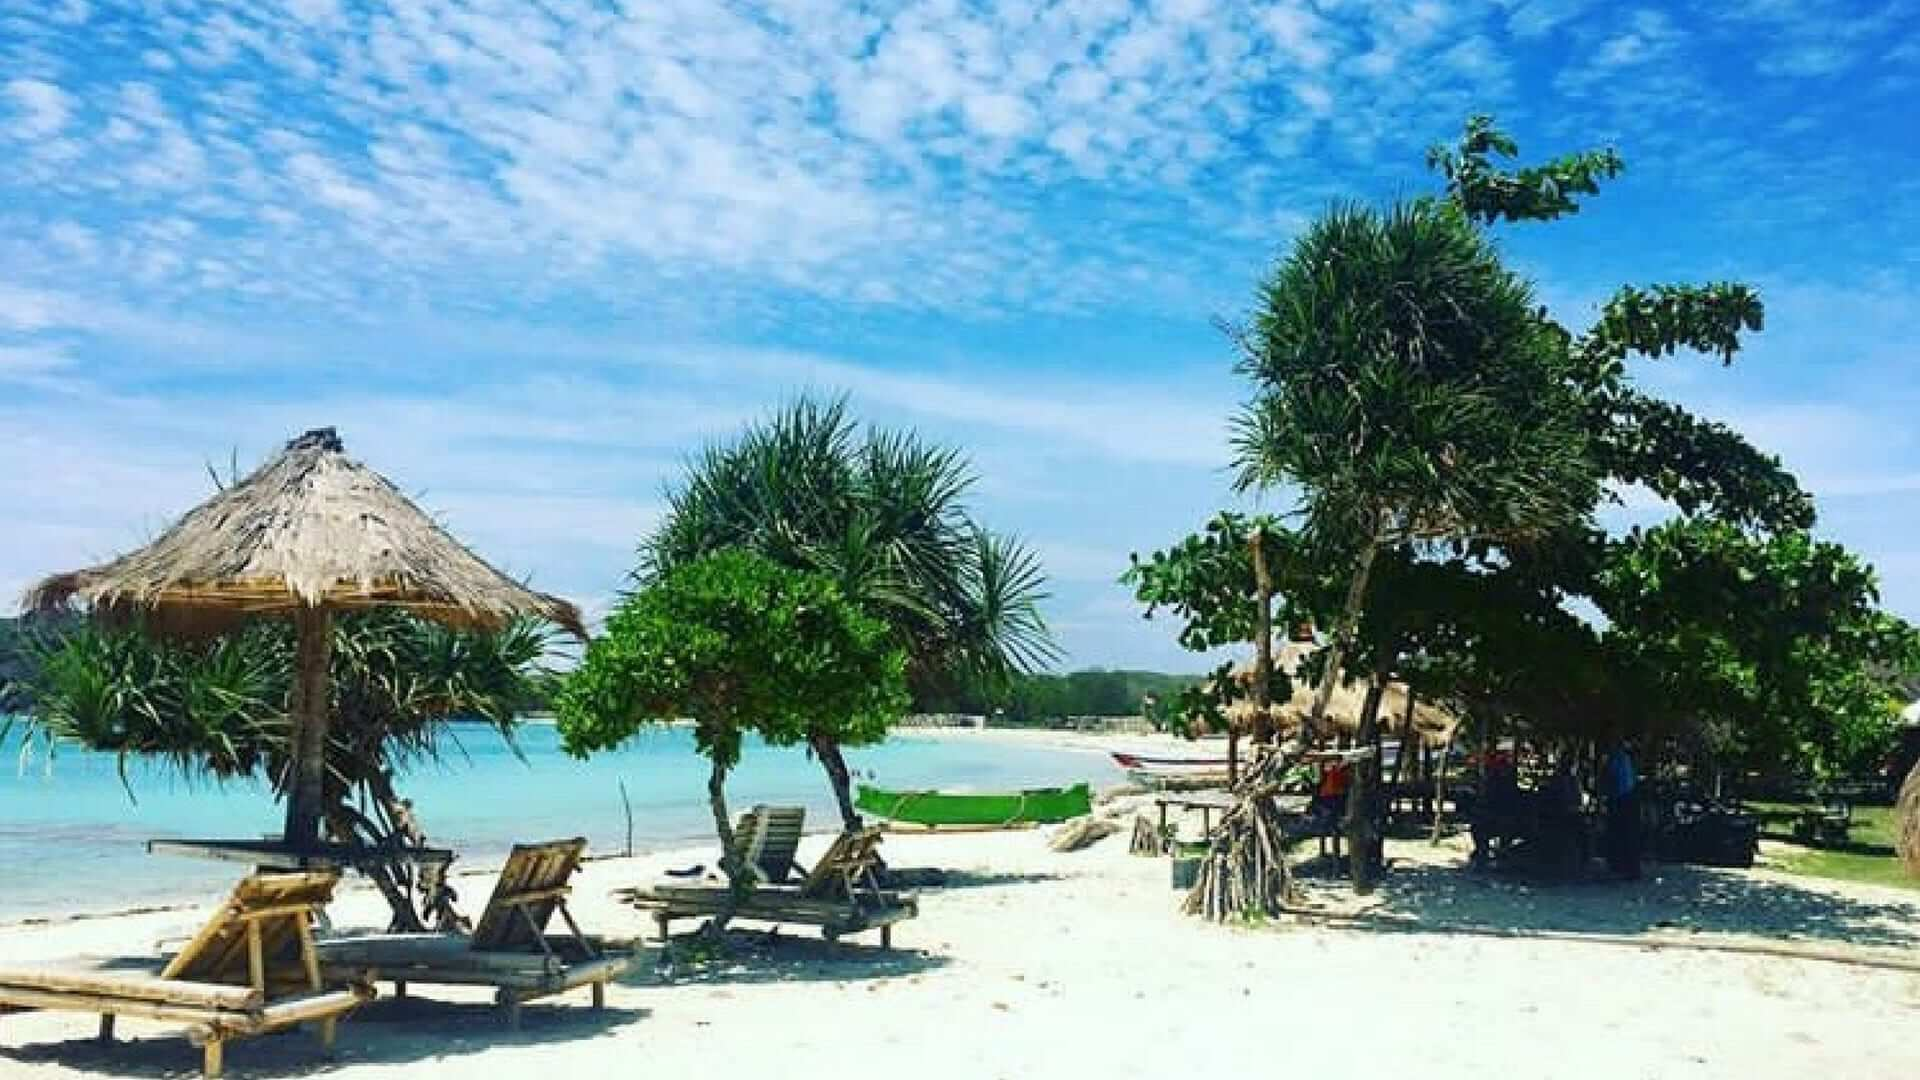 View of beach beds, parasols and trees on the beach on a sunny day in Lombok.